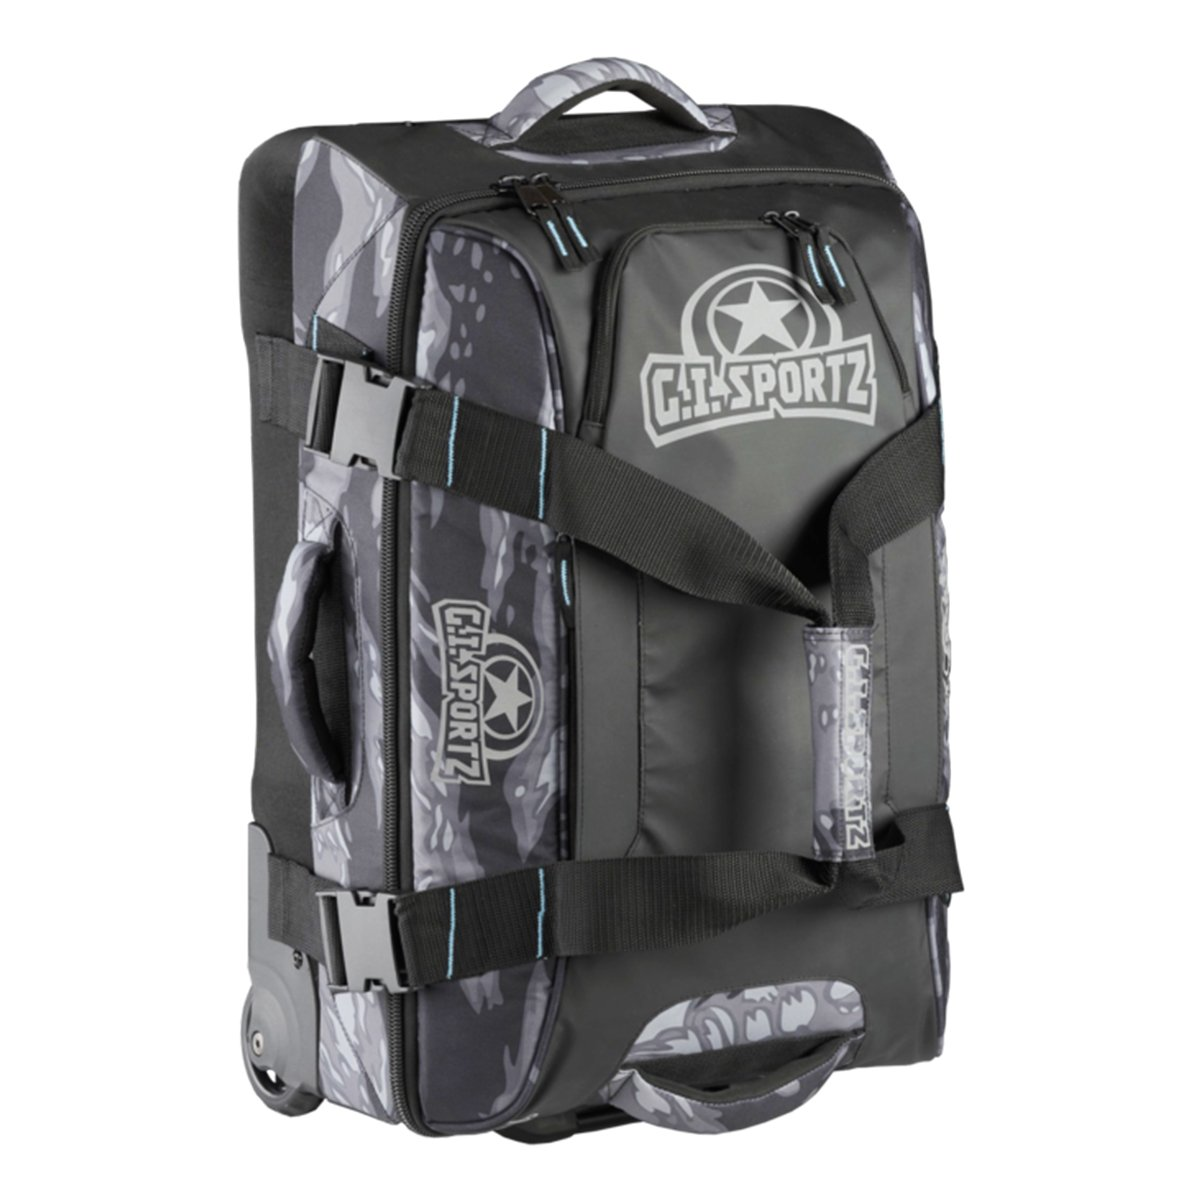 GI Sportz Paintball FLY'R 2.0 Carry On Gear Bag - Tiger Black